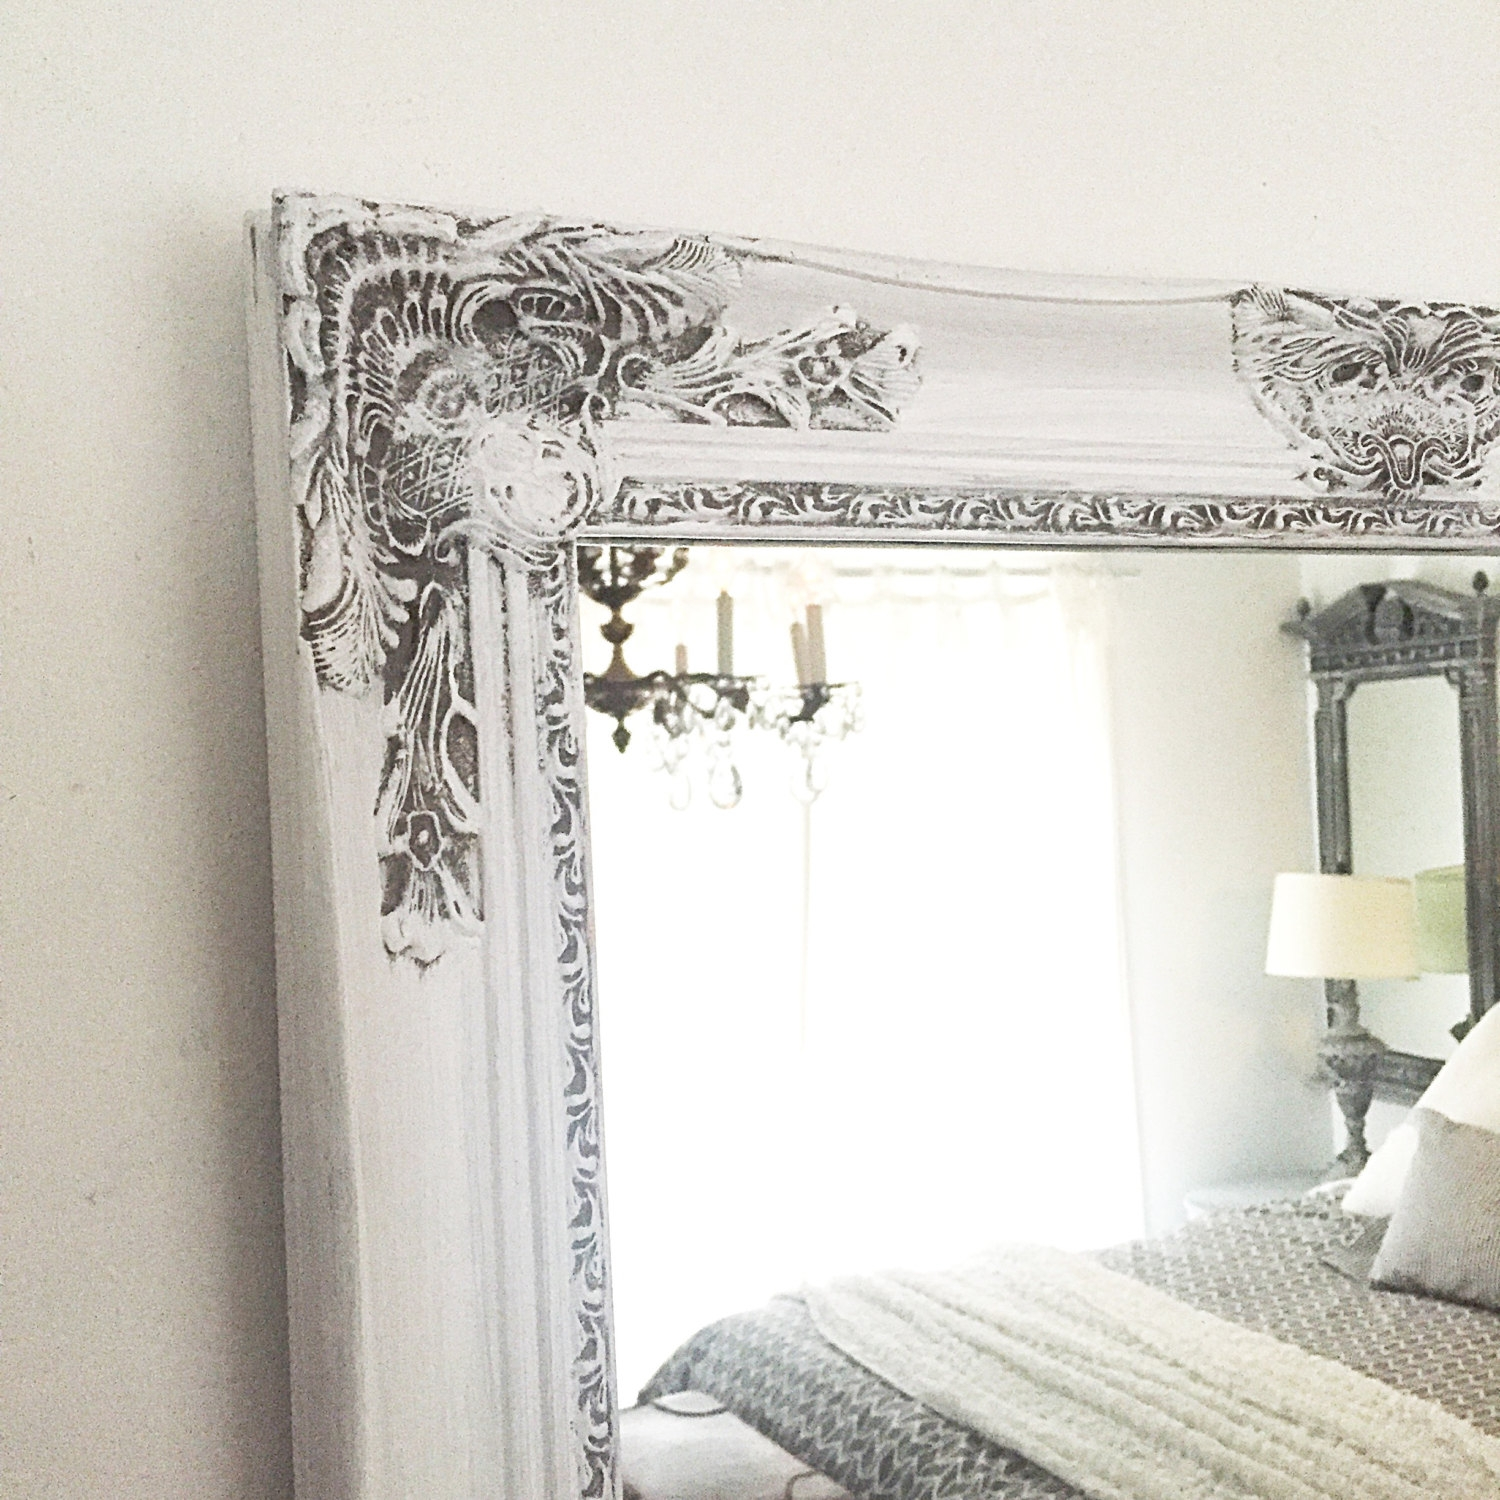 Baroque Etsy Pertaining To Baroque Mirror Large (View 4 of 15)